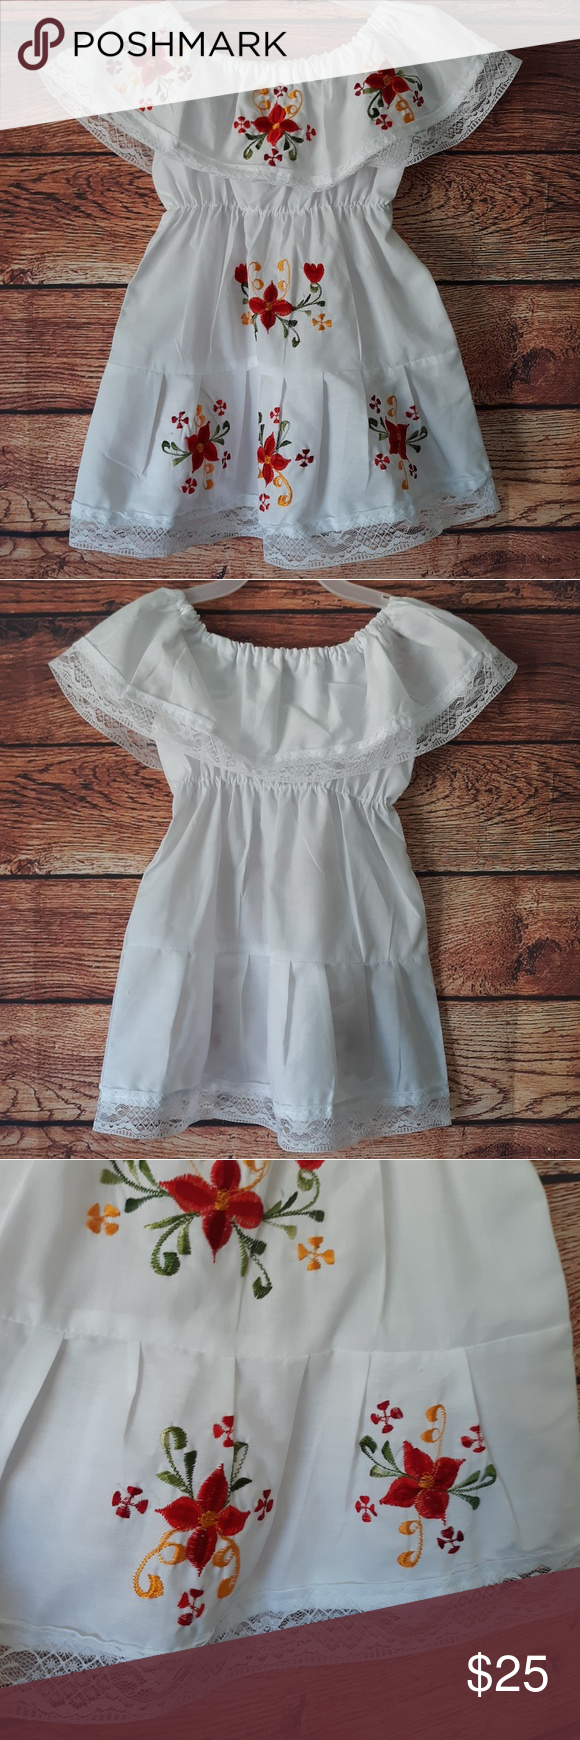 Toddler 2t Red Flower White Lace Dress Lace White Dress Dresses Lace Dress [ 1740 x 580 Pixel ]